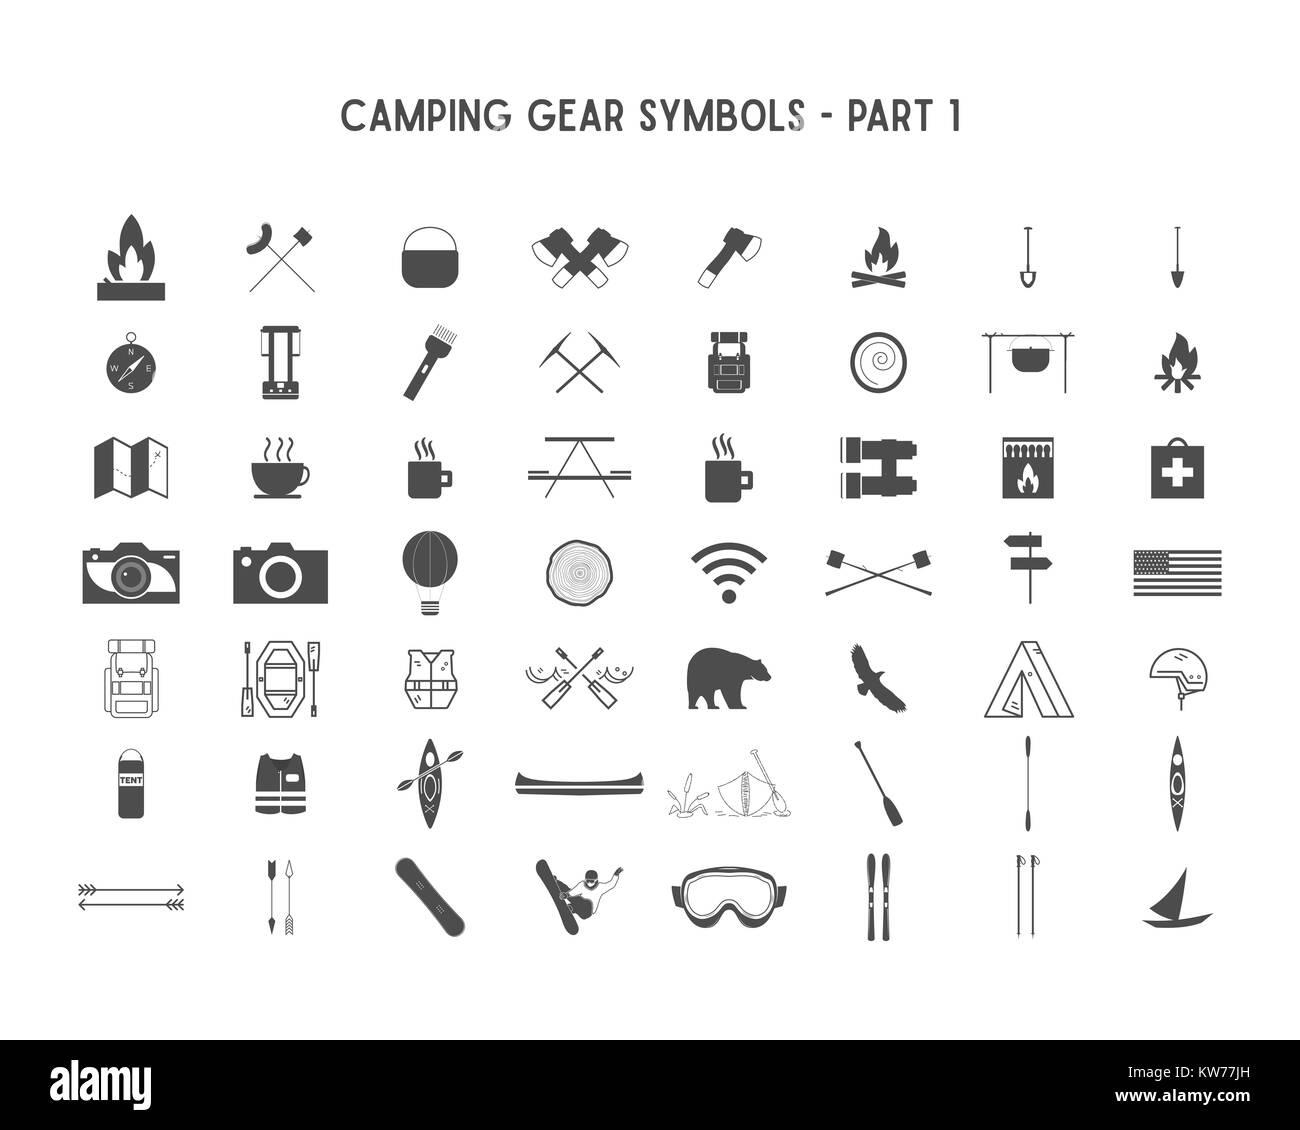 Set of silhouette icons and shapes with different outdoor gear, camping symbols for creating adventure logotypes, - Stock Image